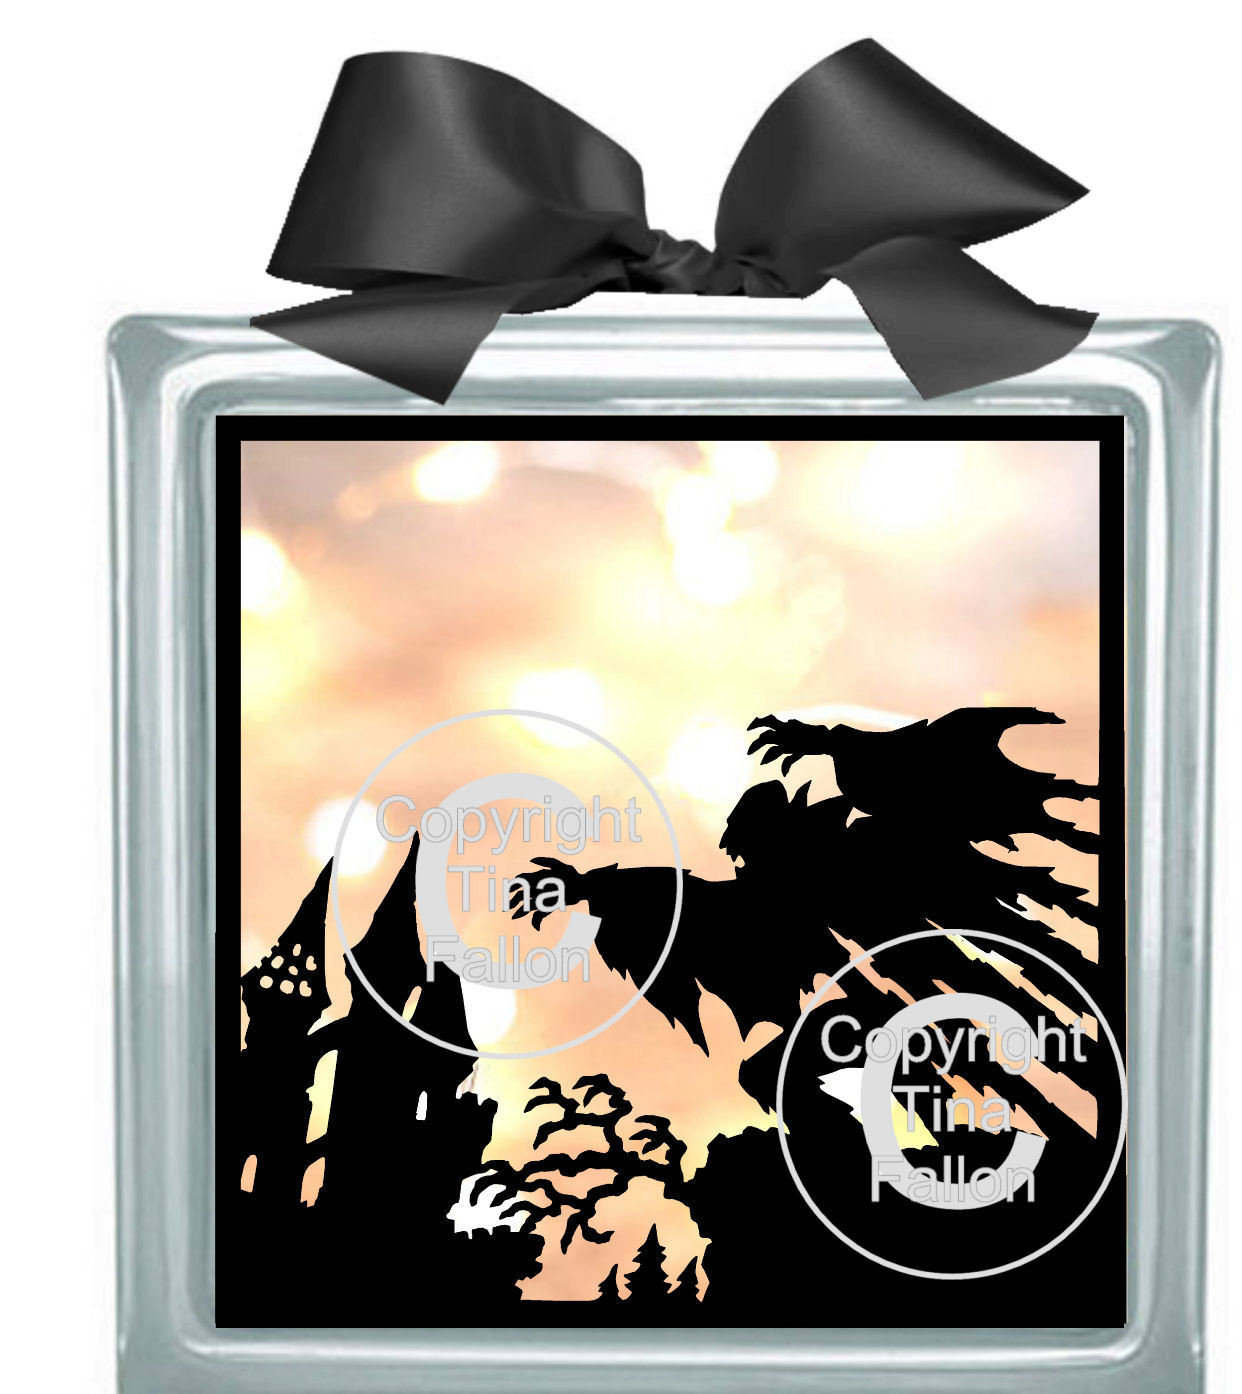 Fantasy, Goth, Halloween 3 - design for vinyl and glass blocks